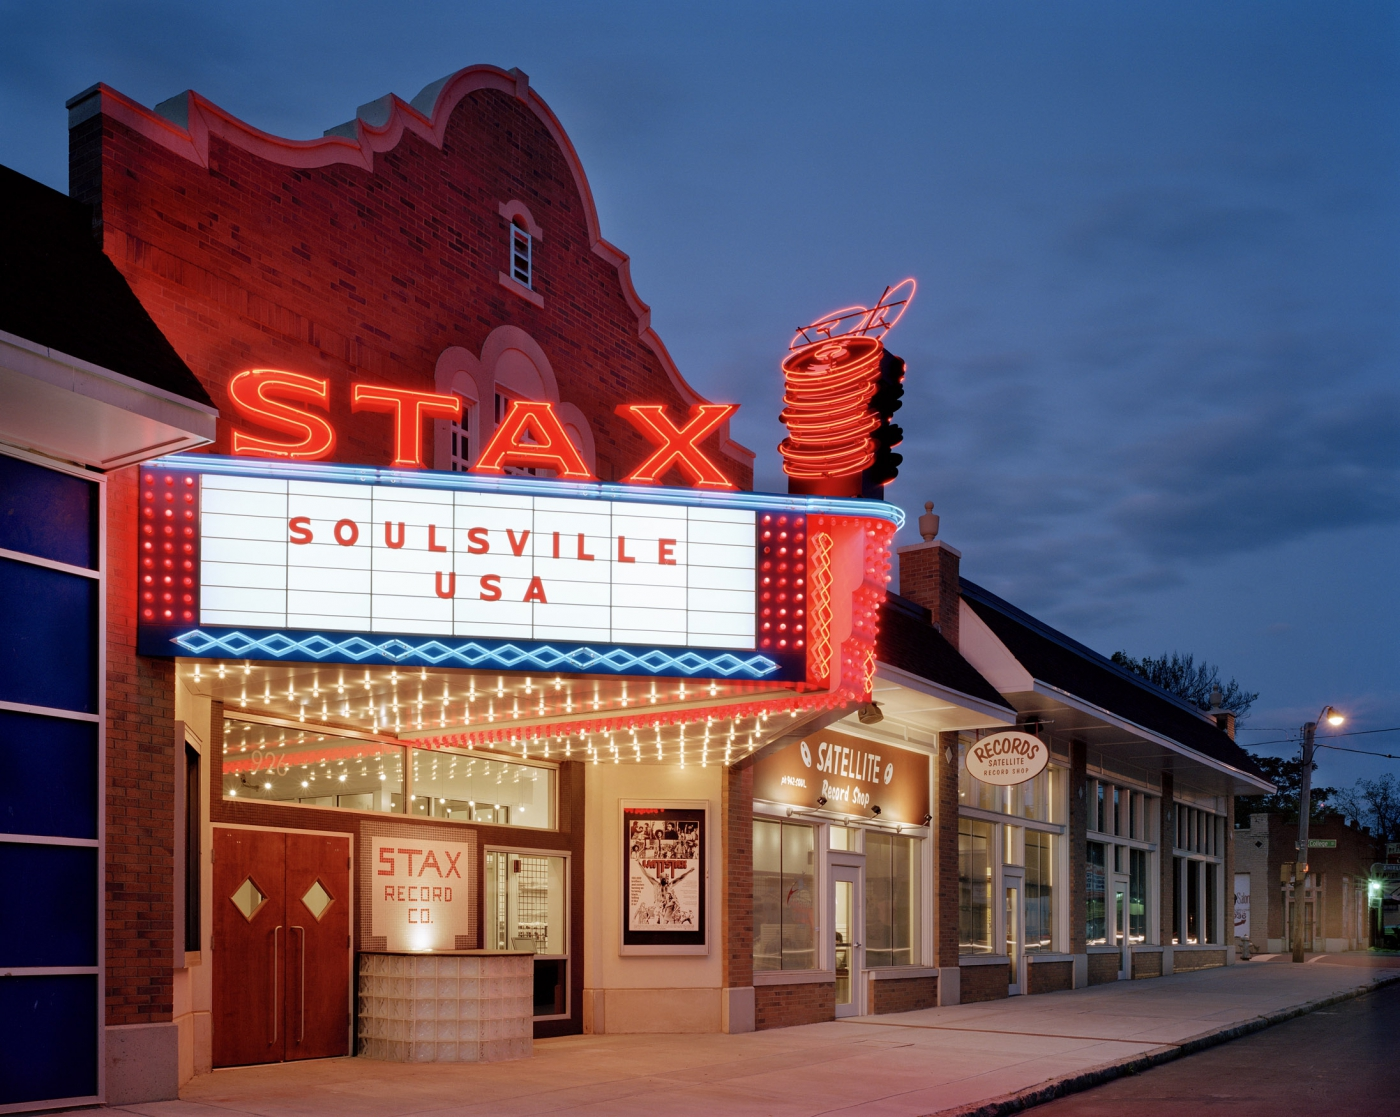 The Stax Museum of American Soul Music in Memphis is a must for any music aficionado.